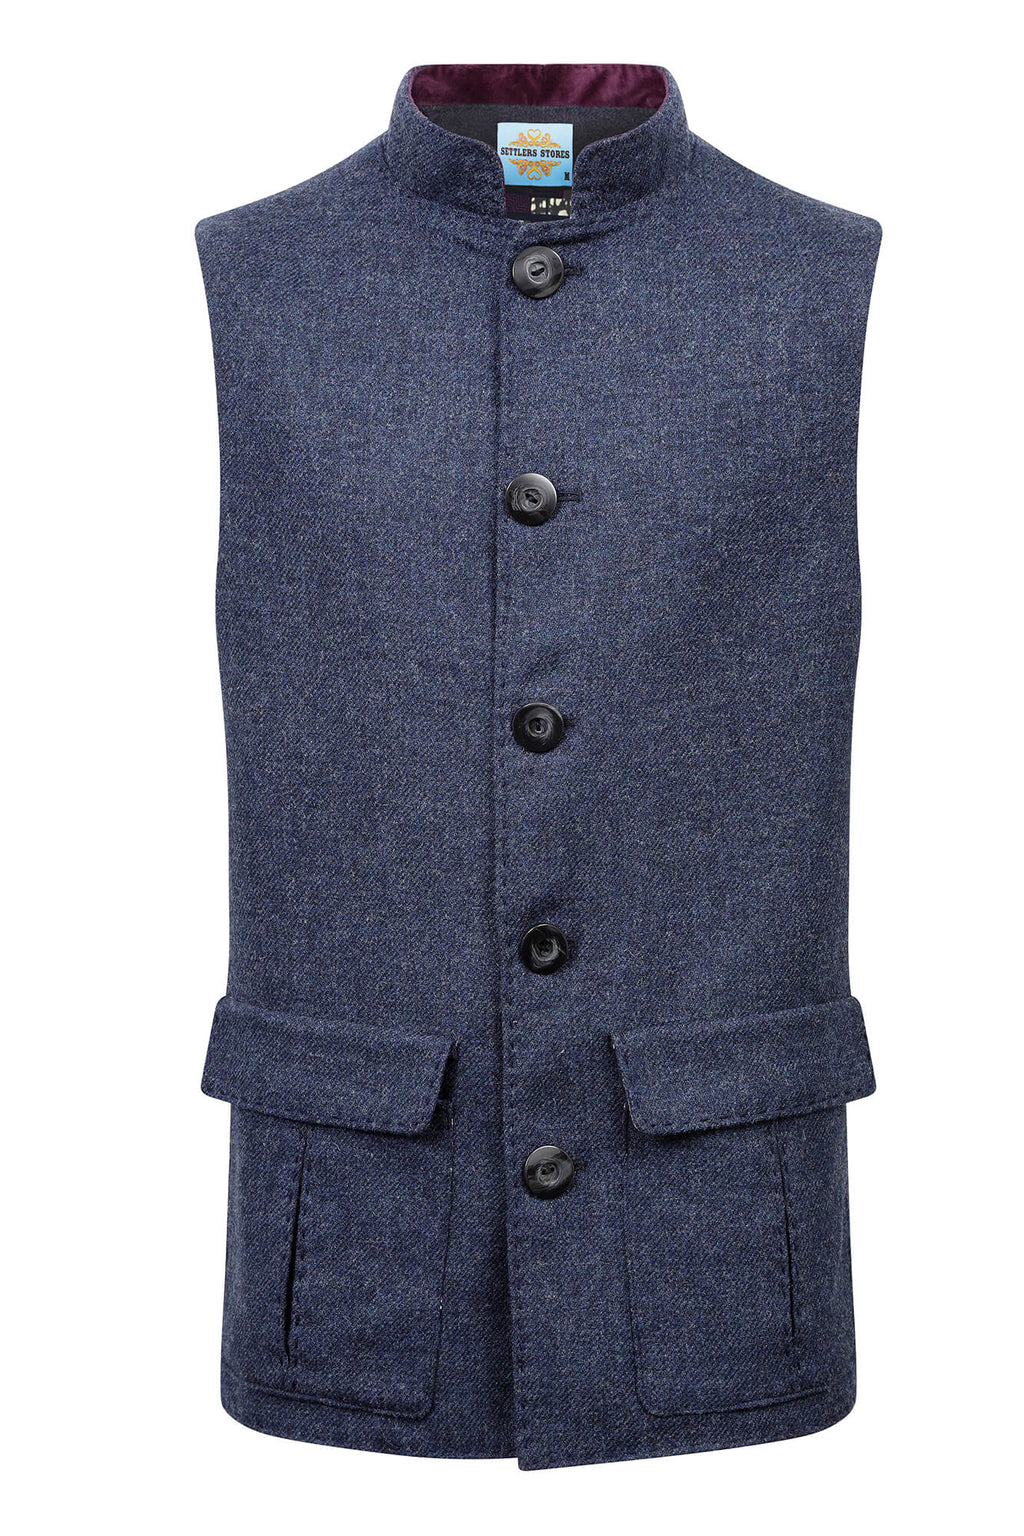 Twain Blue Tweed Gilet